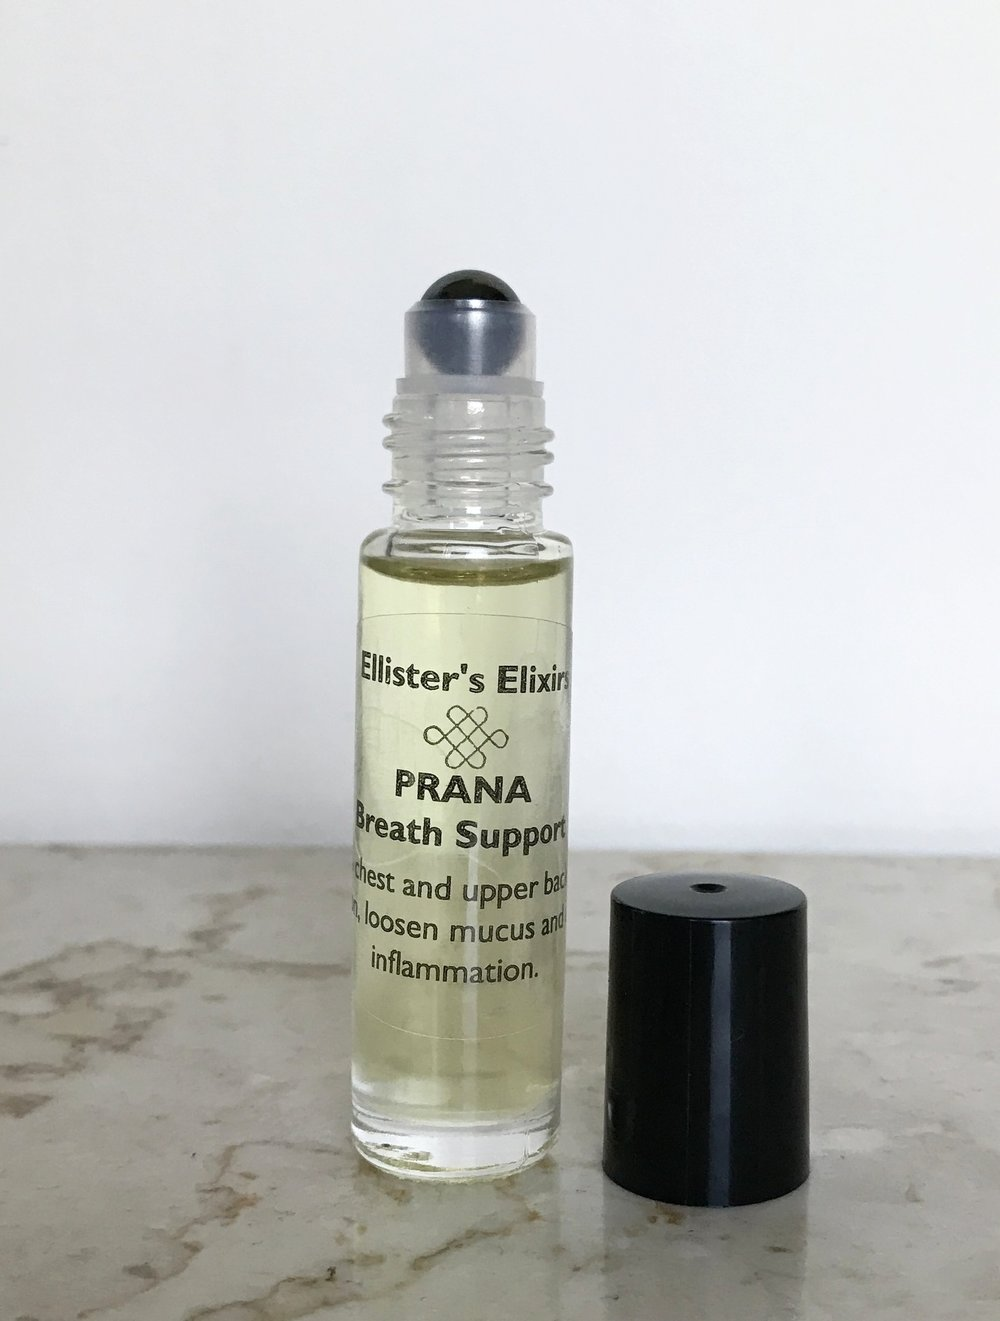 Prana-Breath Support